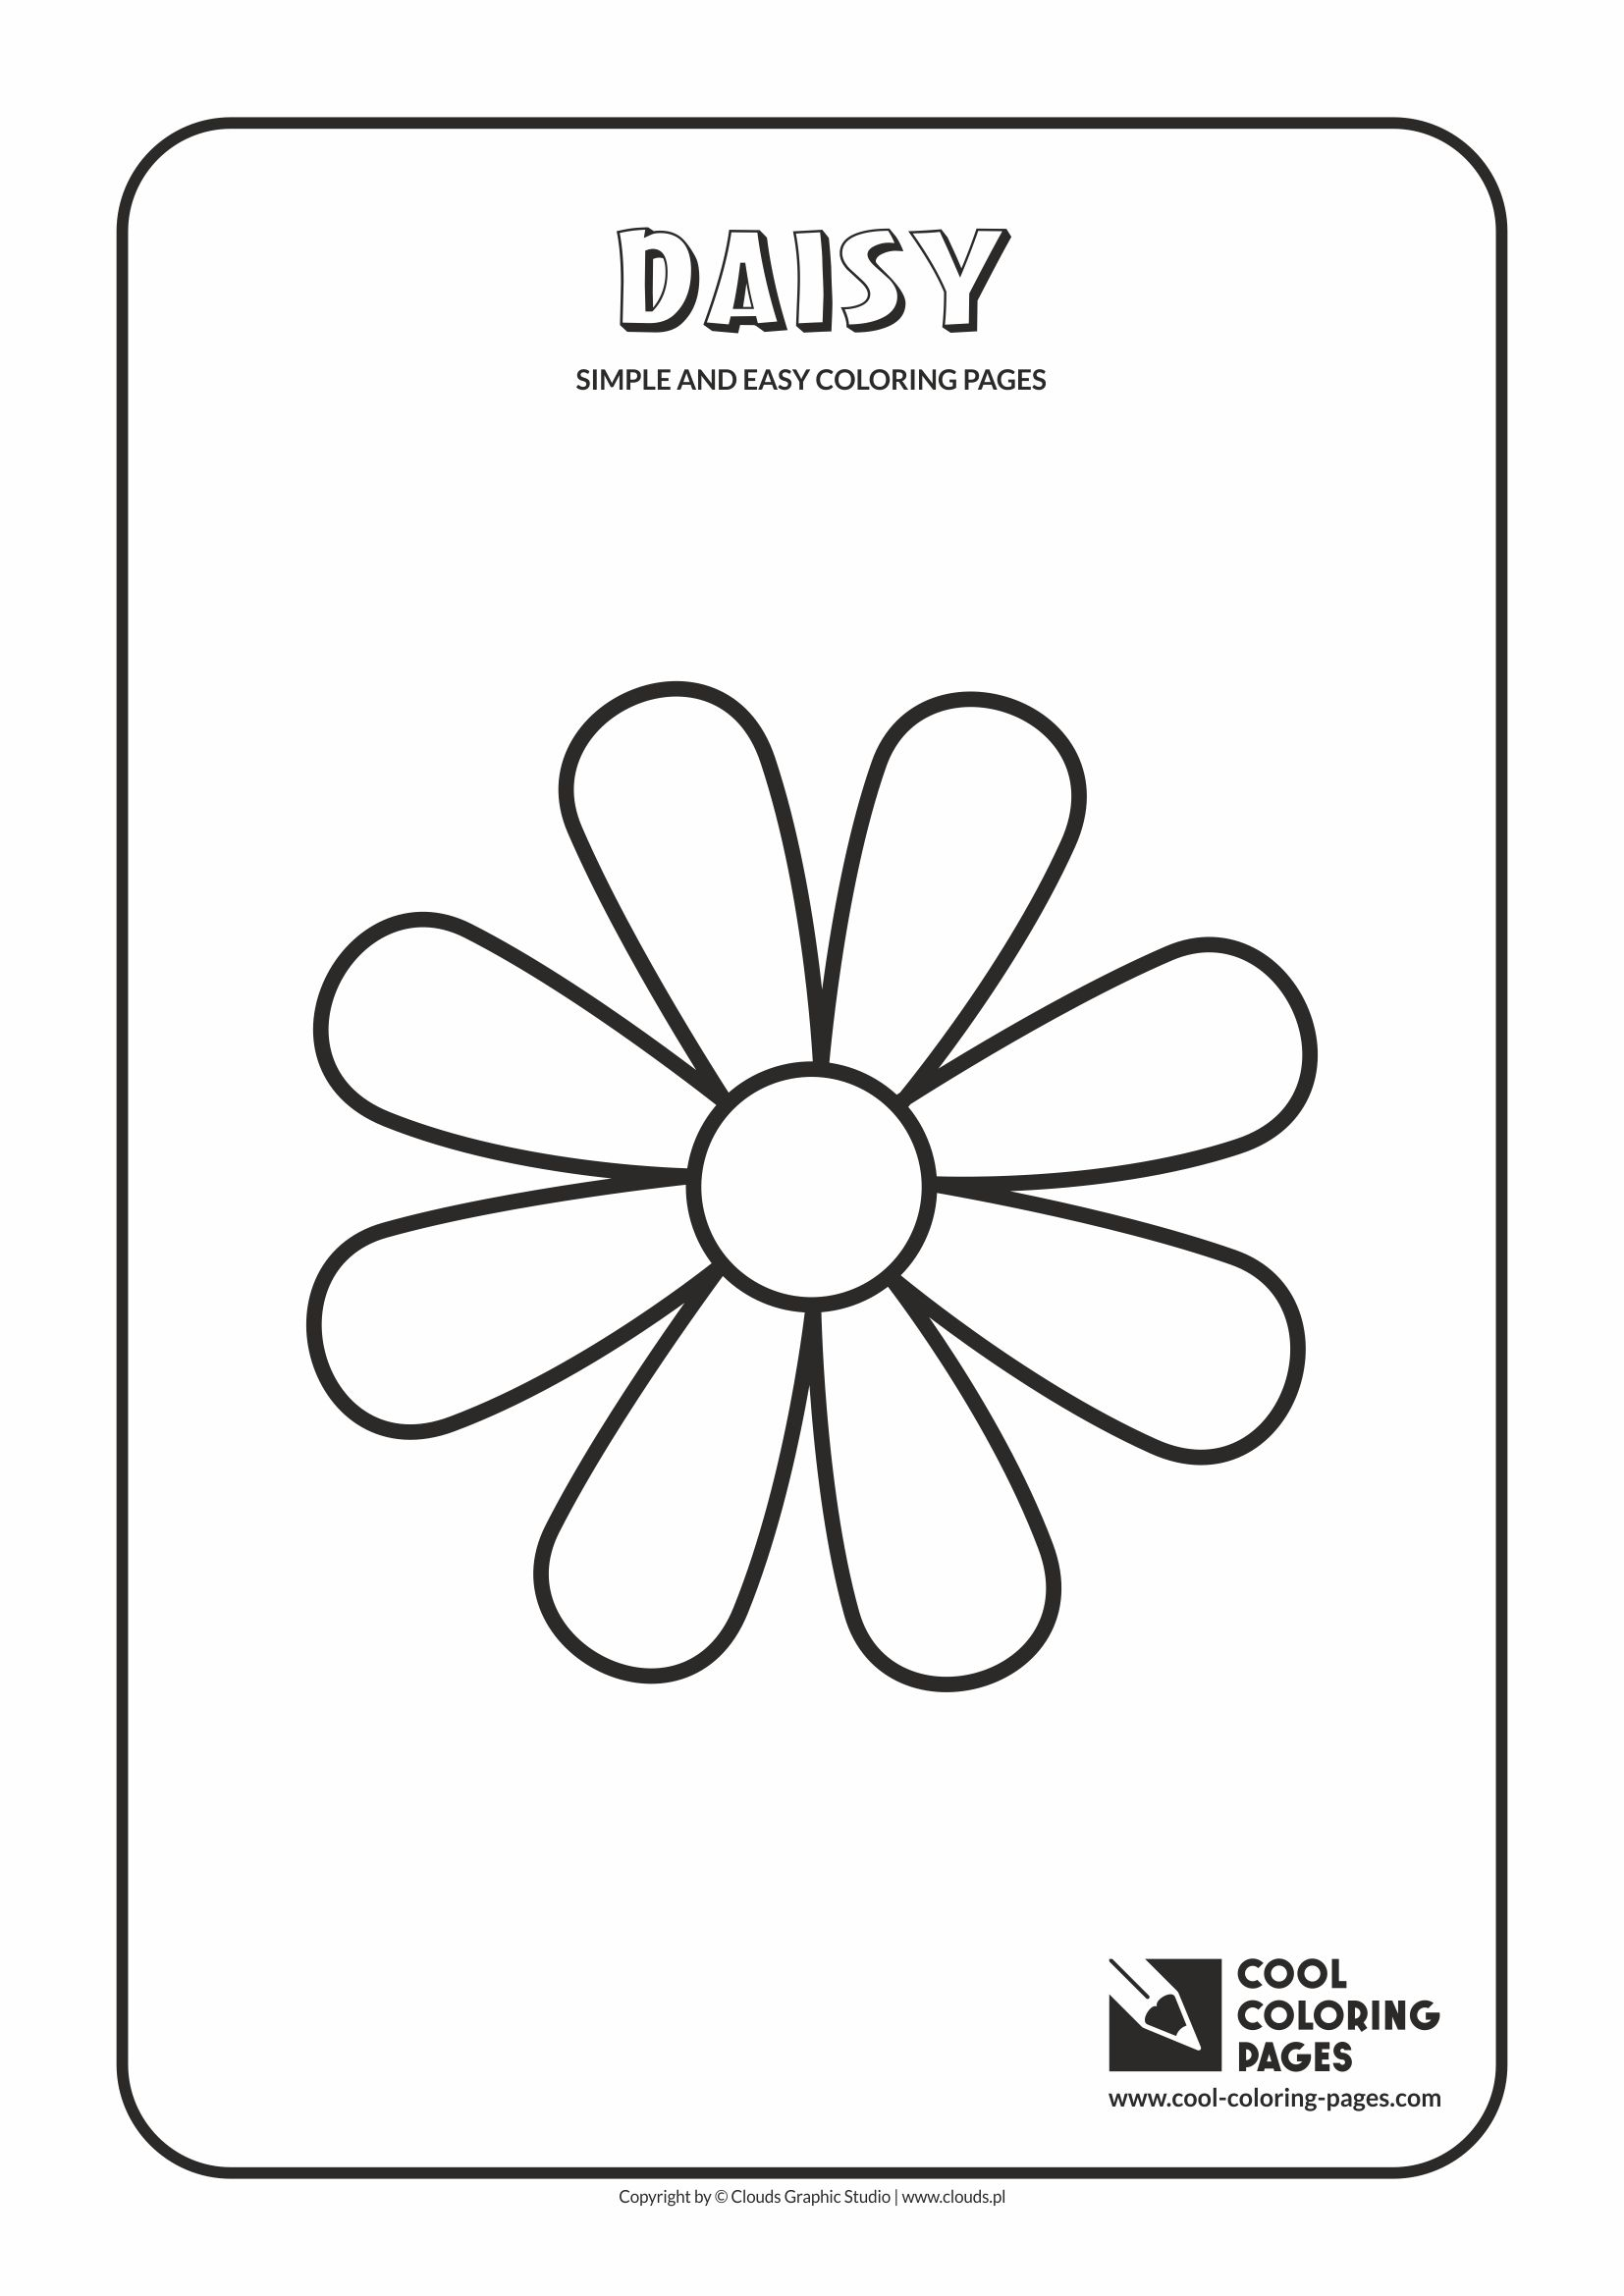 Simple and easy coloring pages for toddlers - Daisy